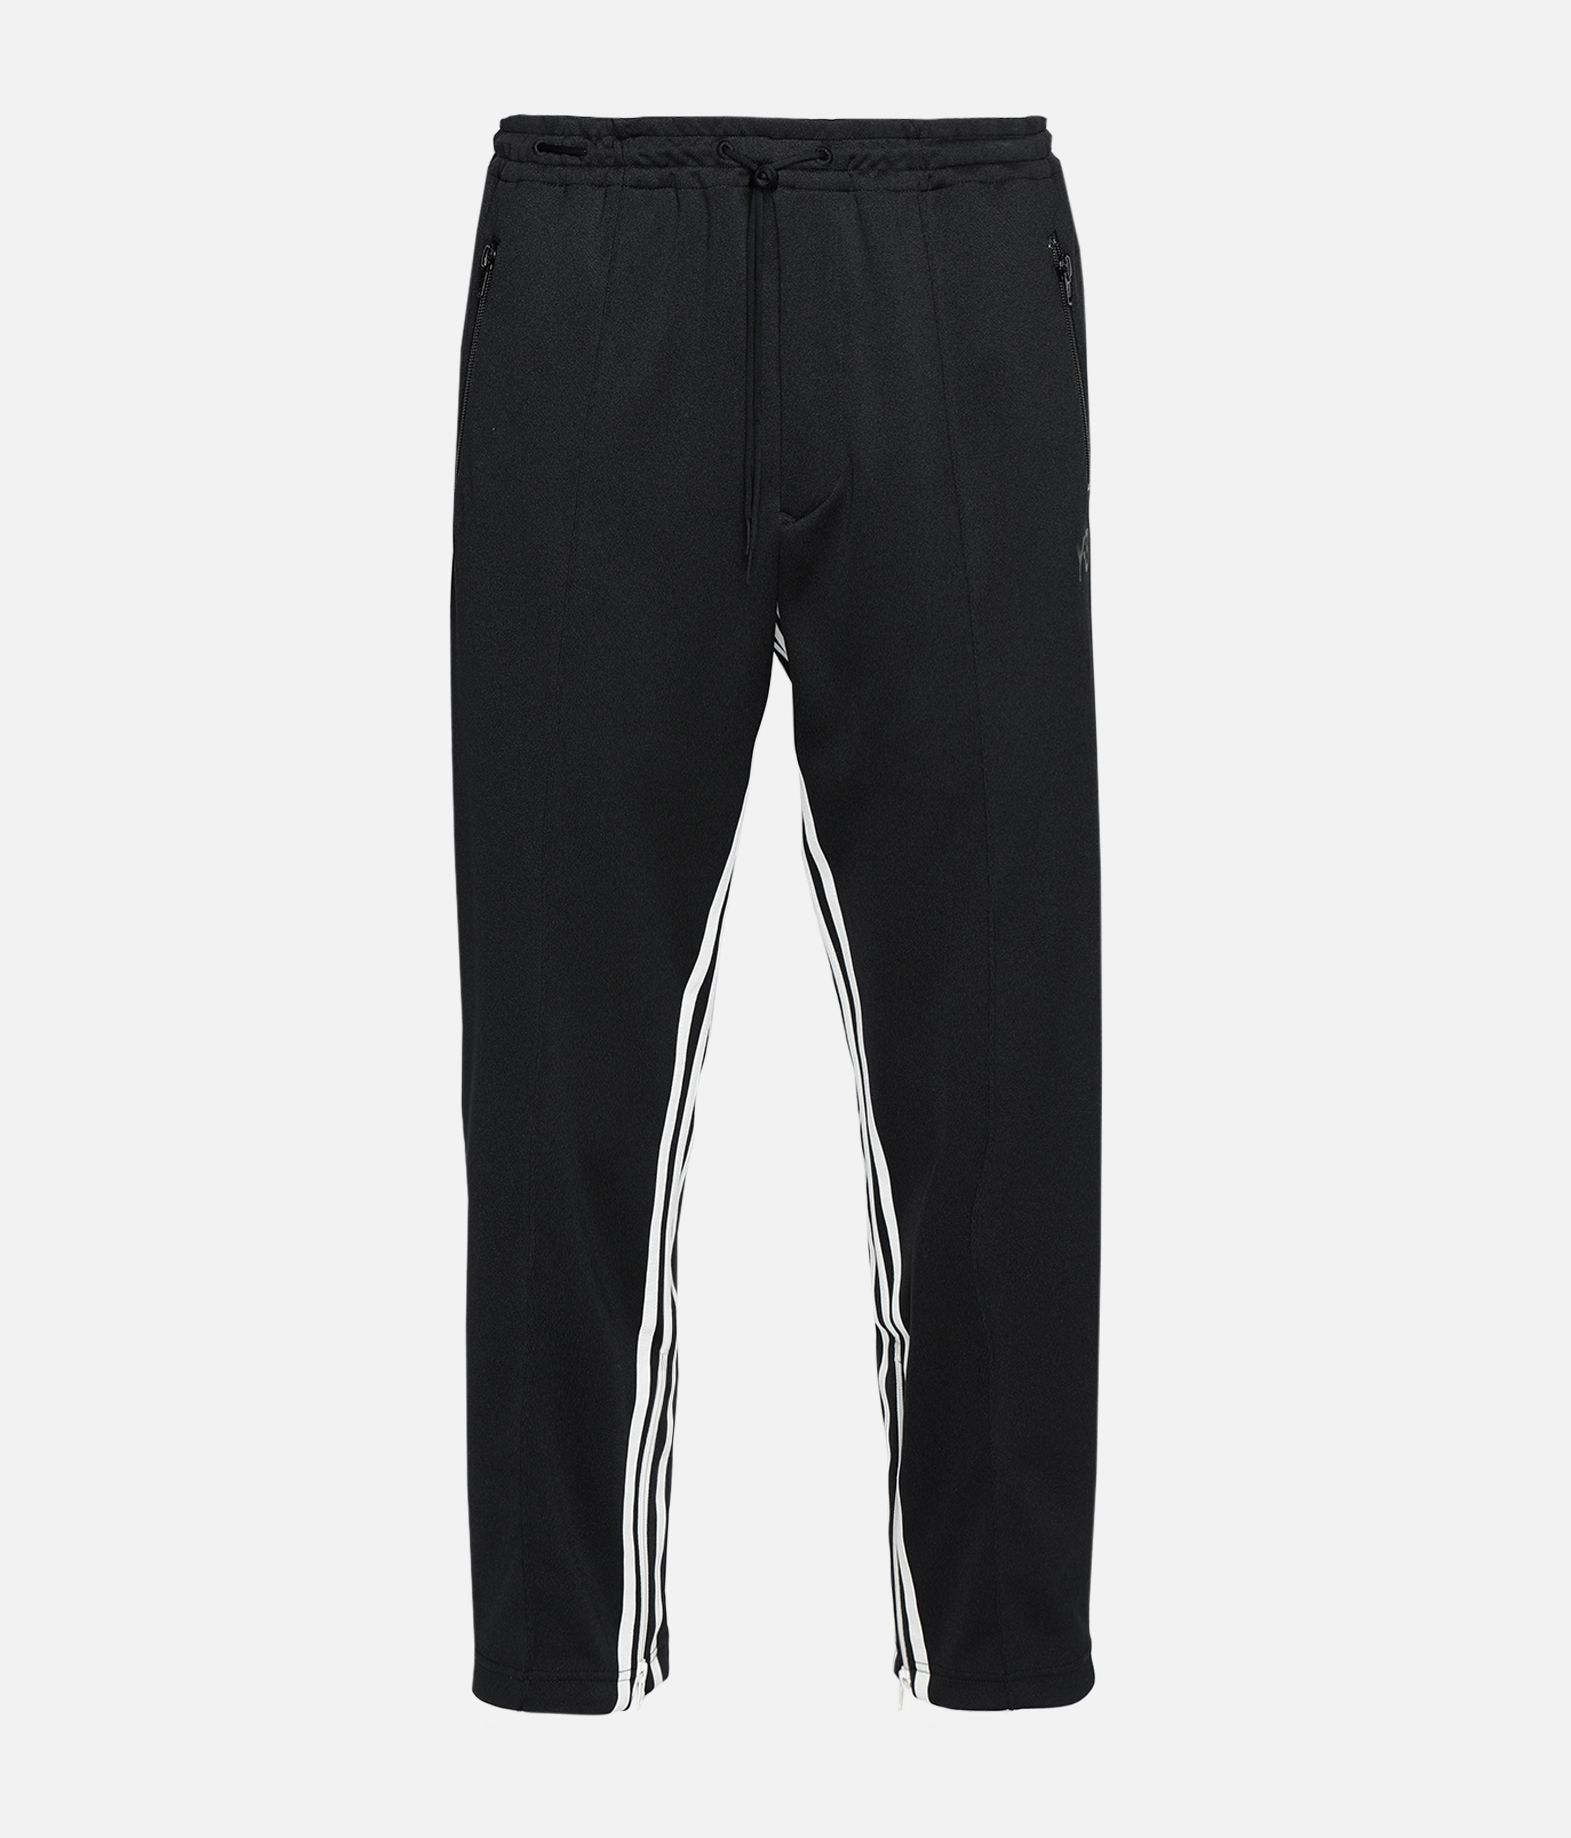 Y-3 Y-3 3-Stripes Cropped Track Pants Tracksuit pants Man f